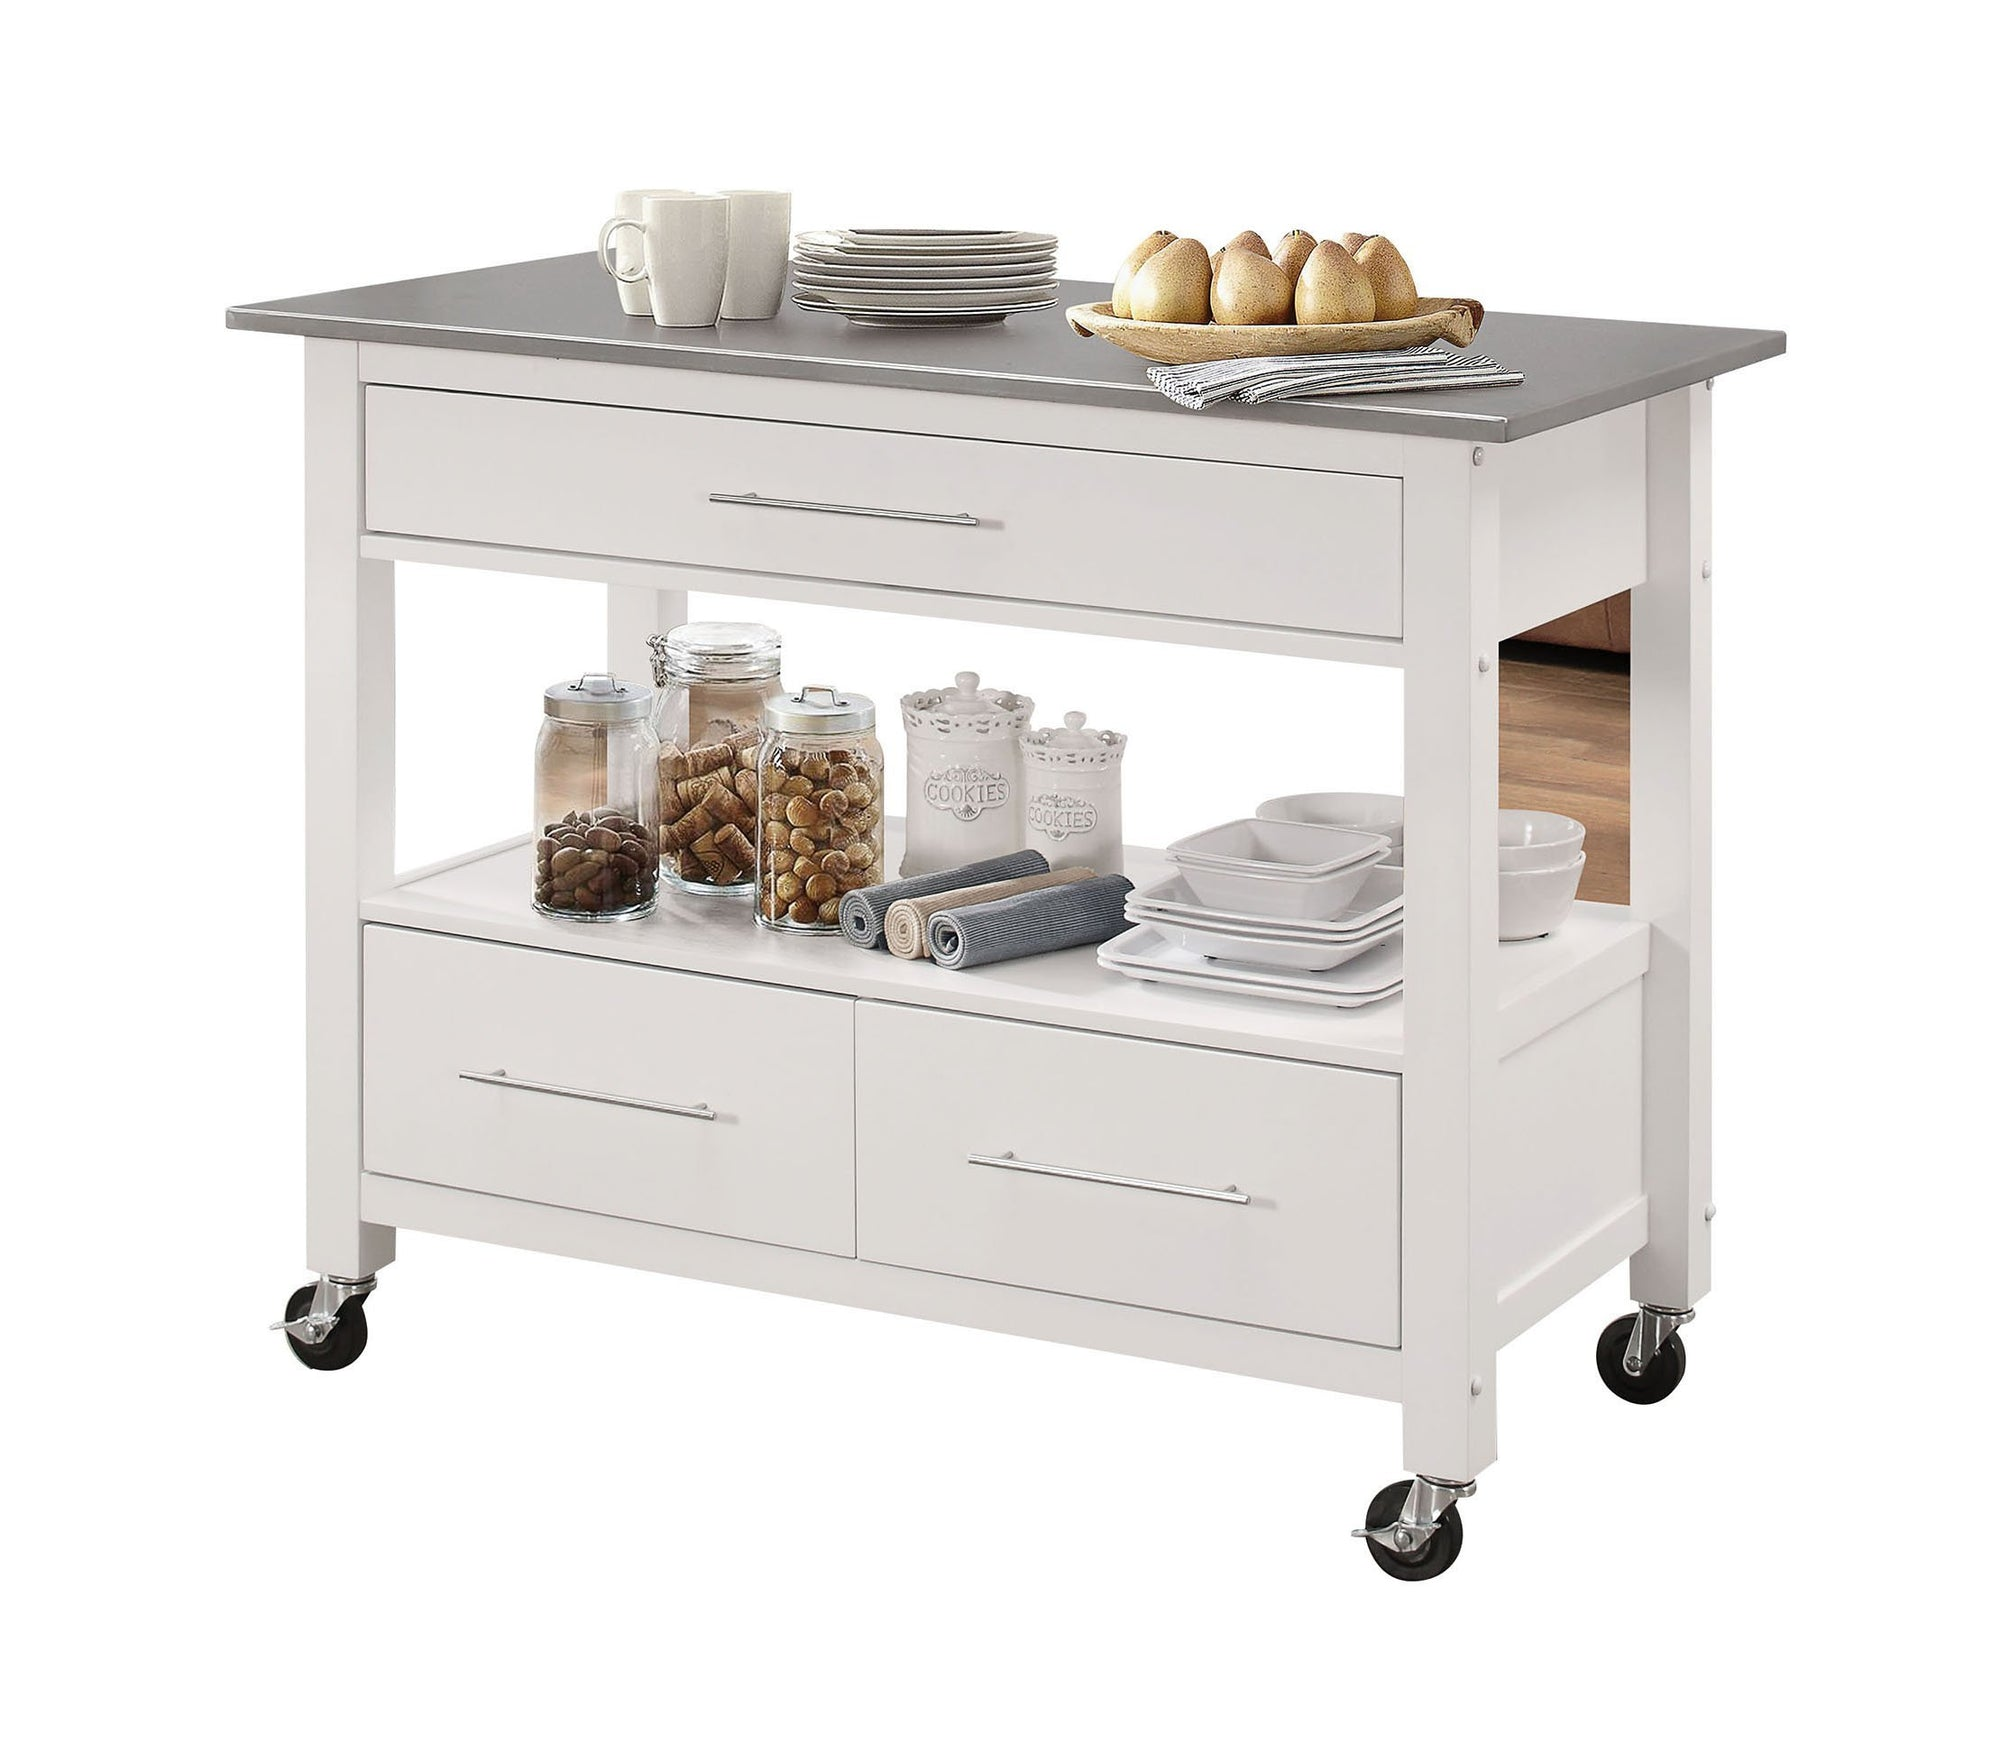 Benches & Carts Kitchen Island In Stainless Steel And White - Stainless Steel, Rubber W Stainless Steel And White 689211813458 HR286679